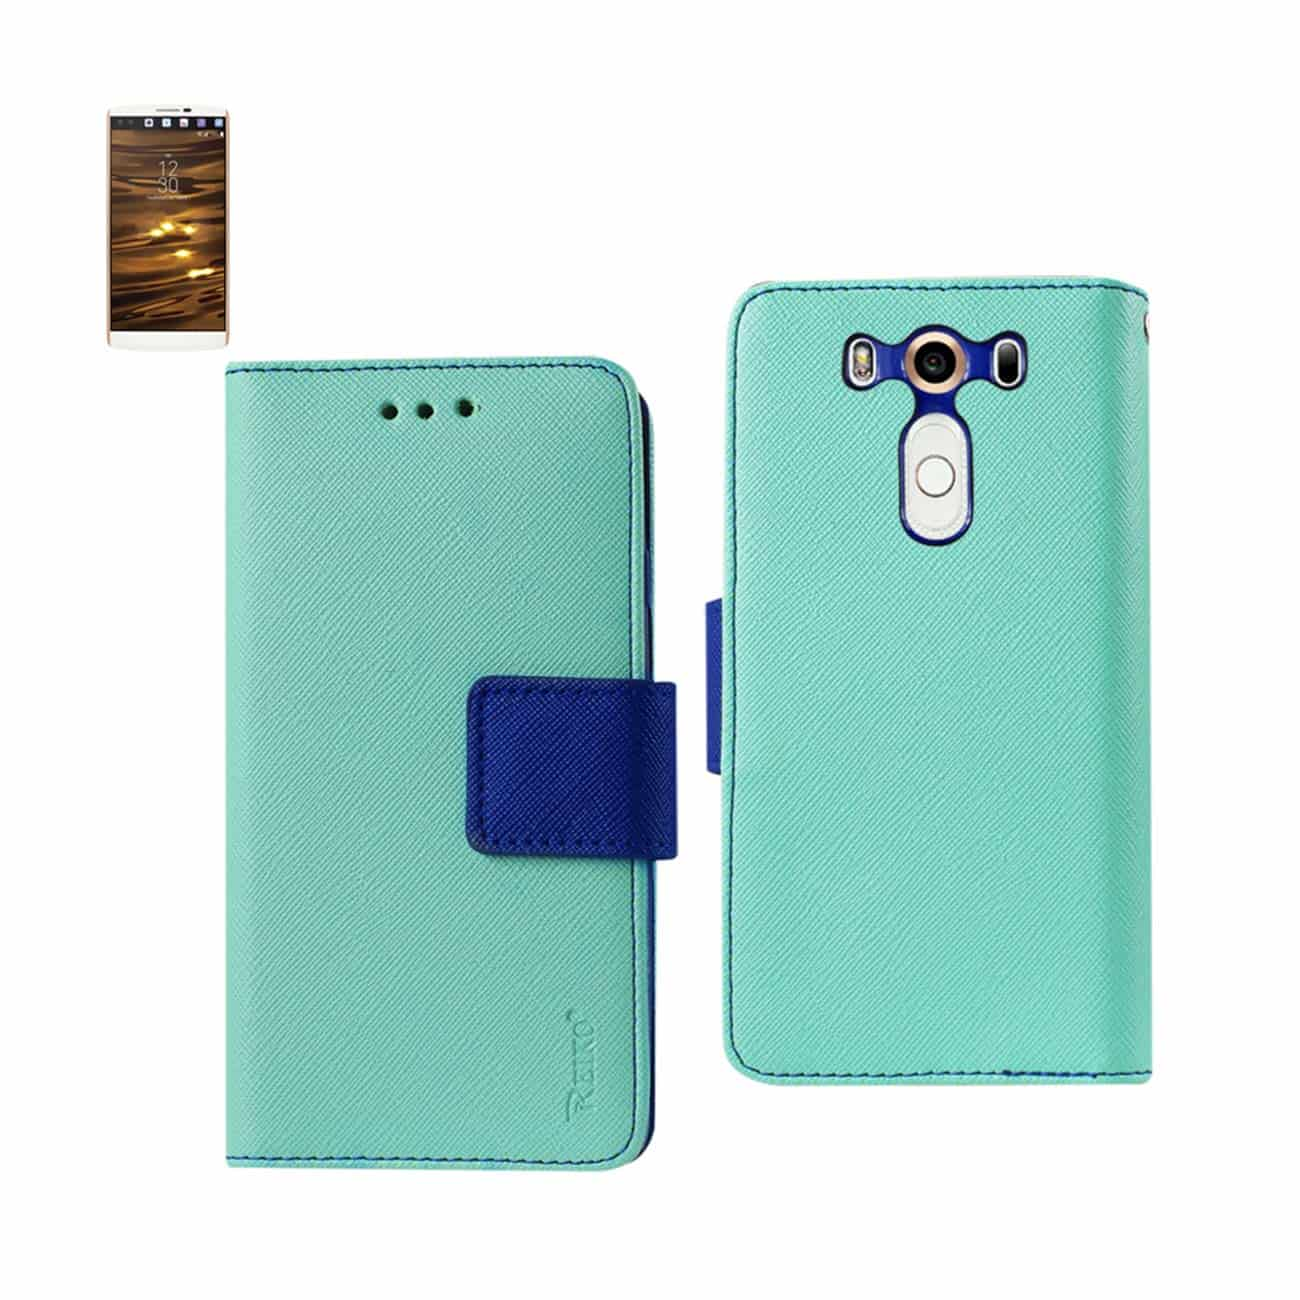 LG V10 3-IN-1 WALLET CASE IN GREEN